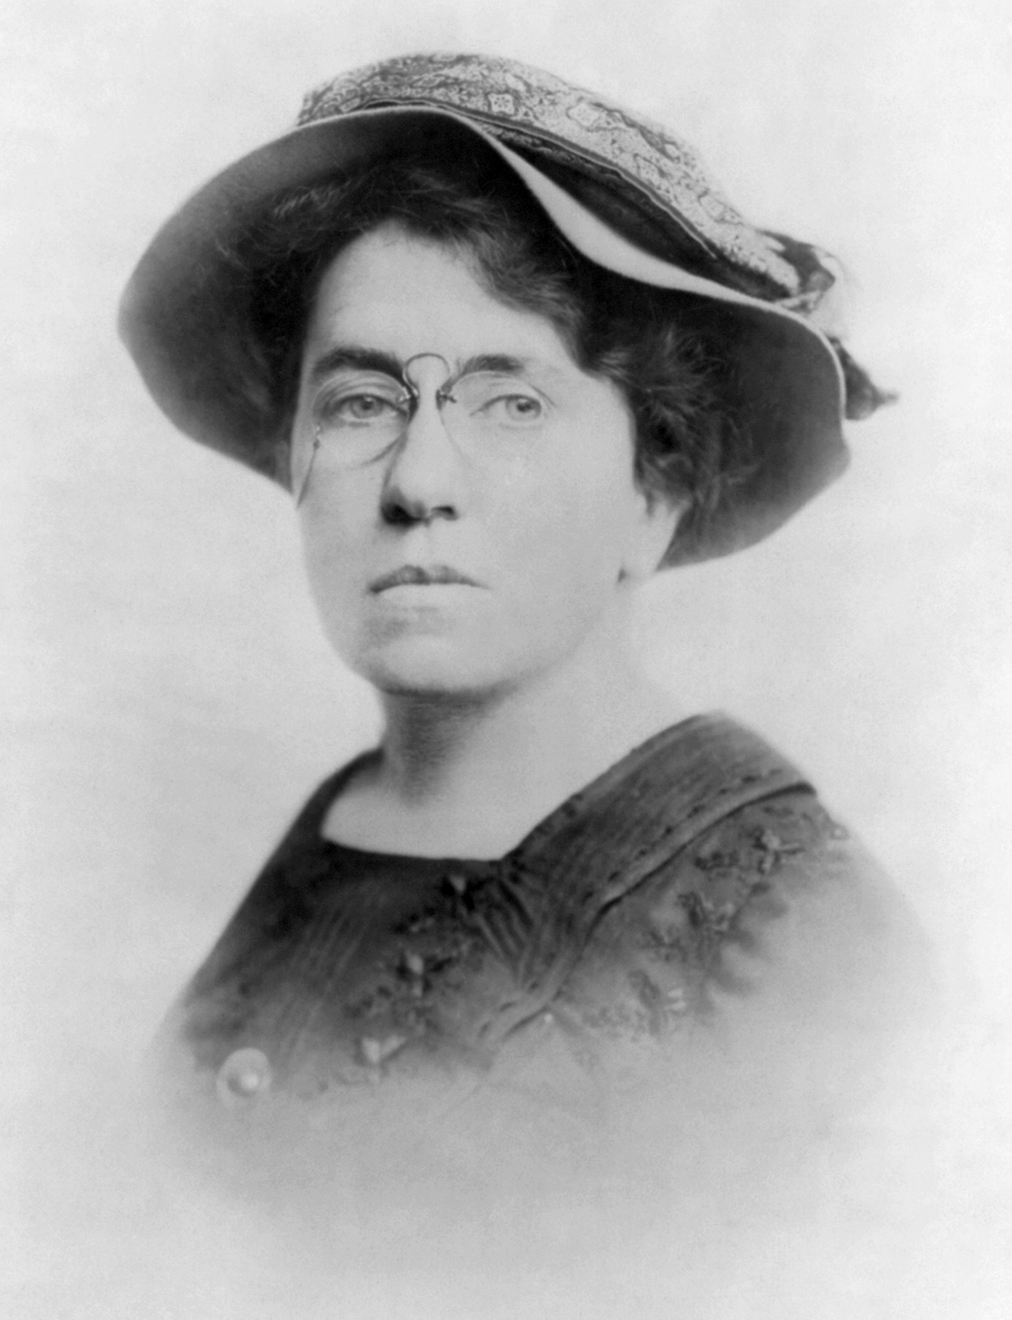 006 Emma Goldman 2 Anarchism And Other Essays Essay Incredible Summary Mla Citation Full